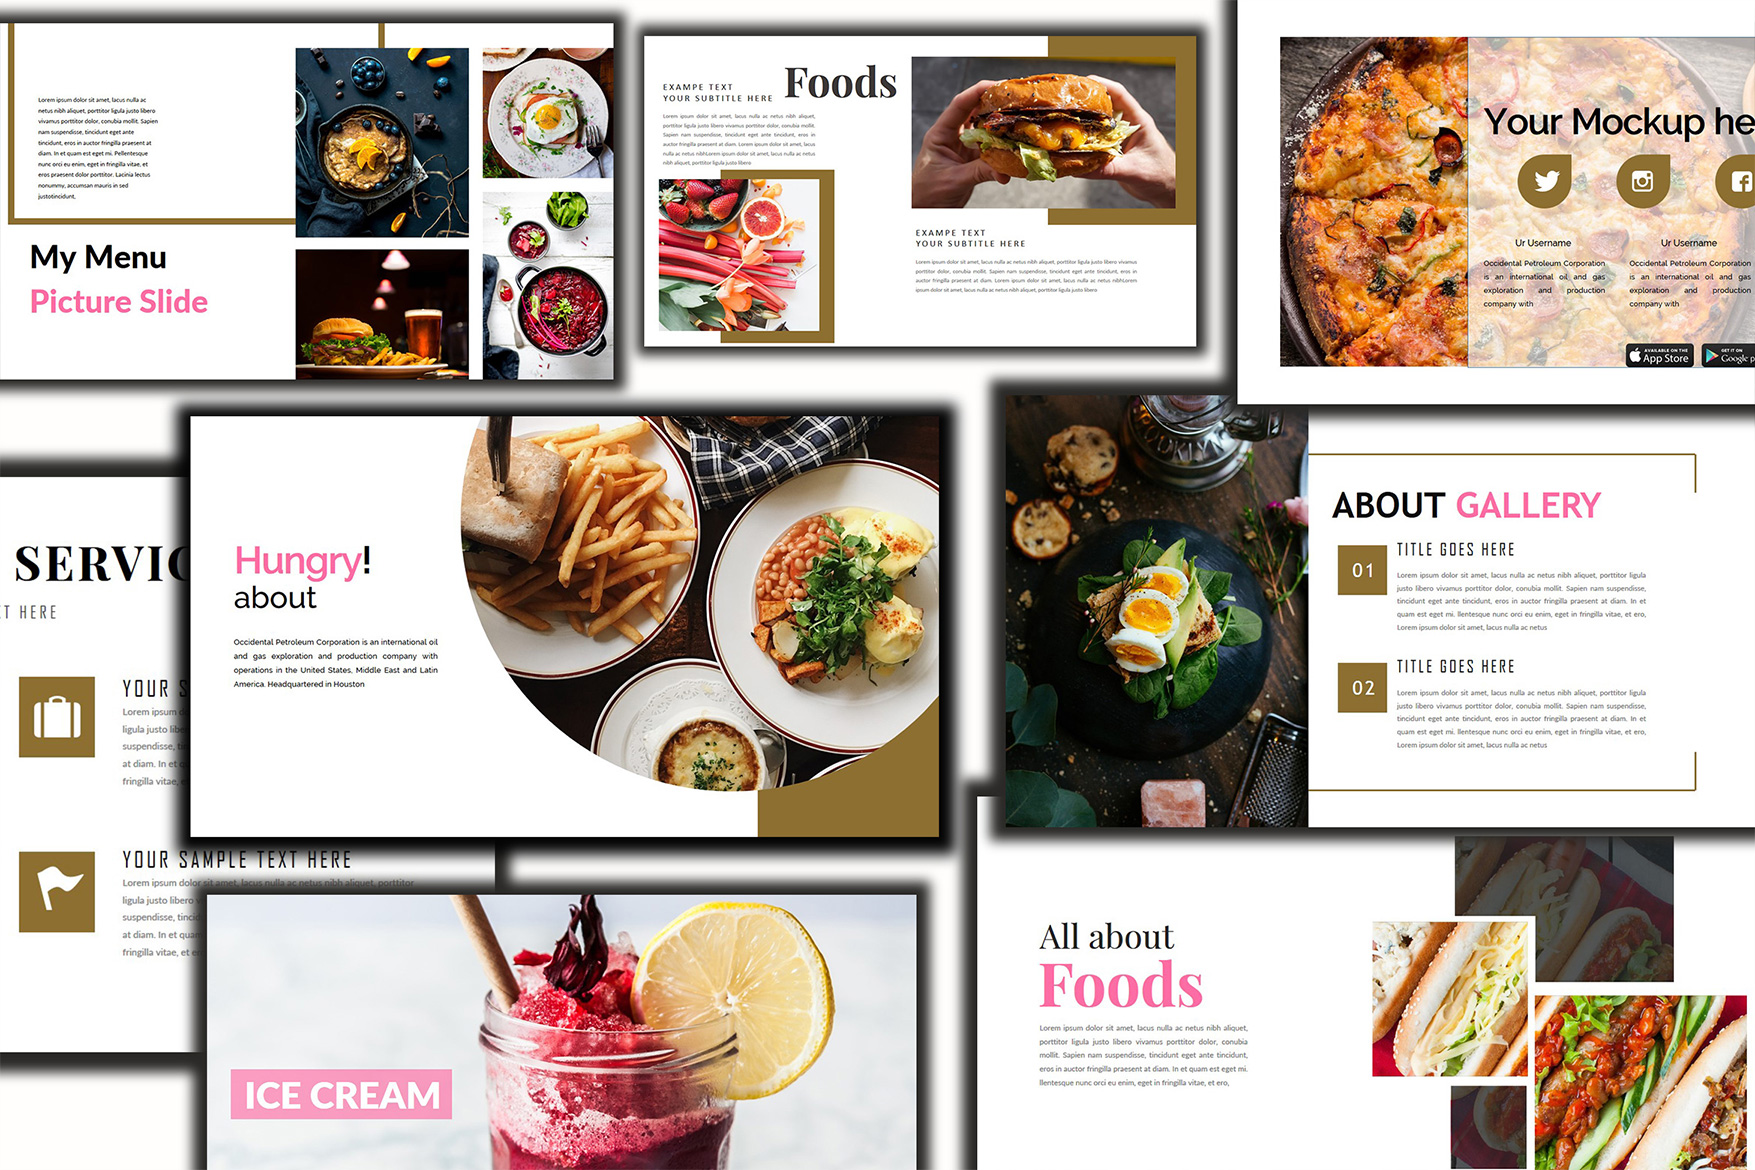 Delicious Food - Powerpoint Template example image 7